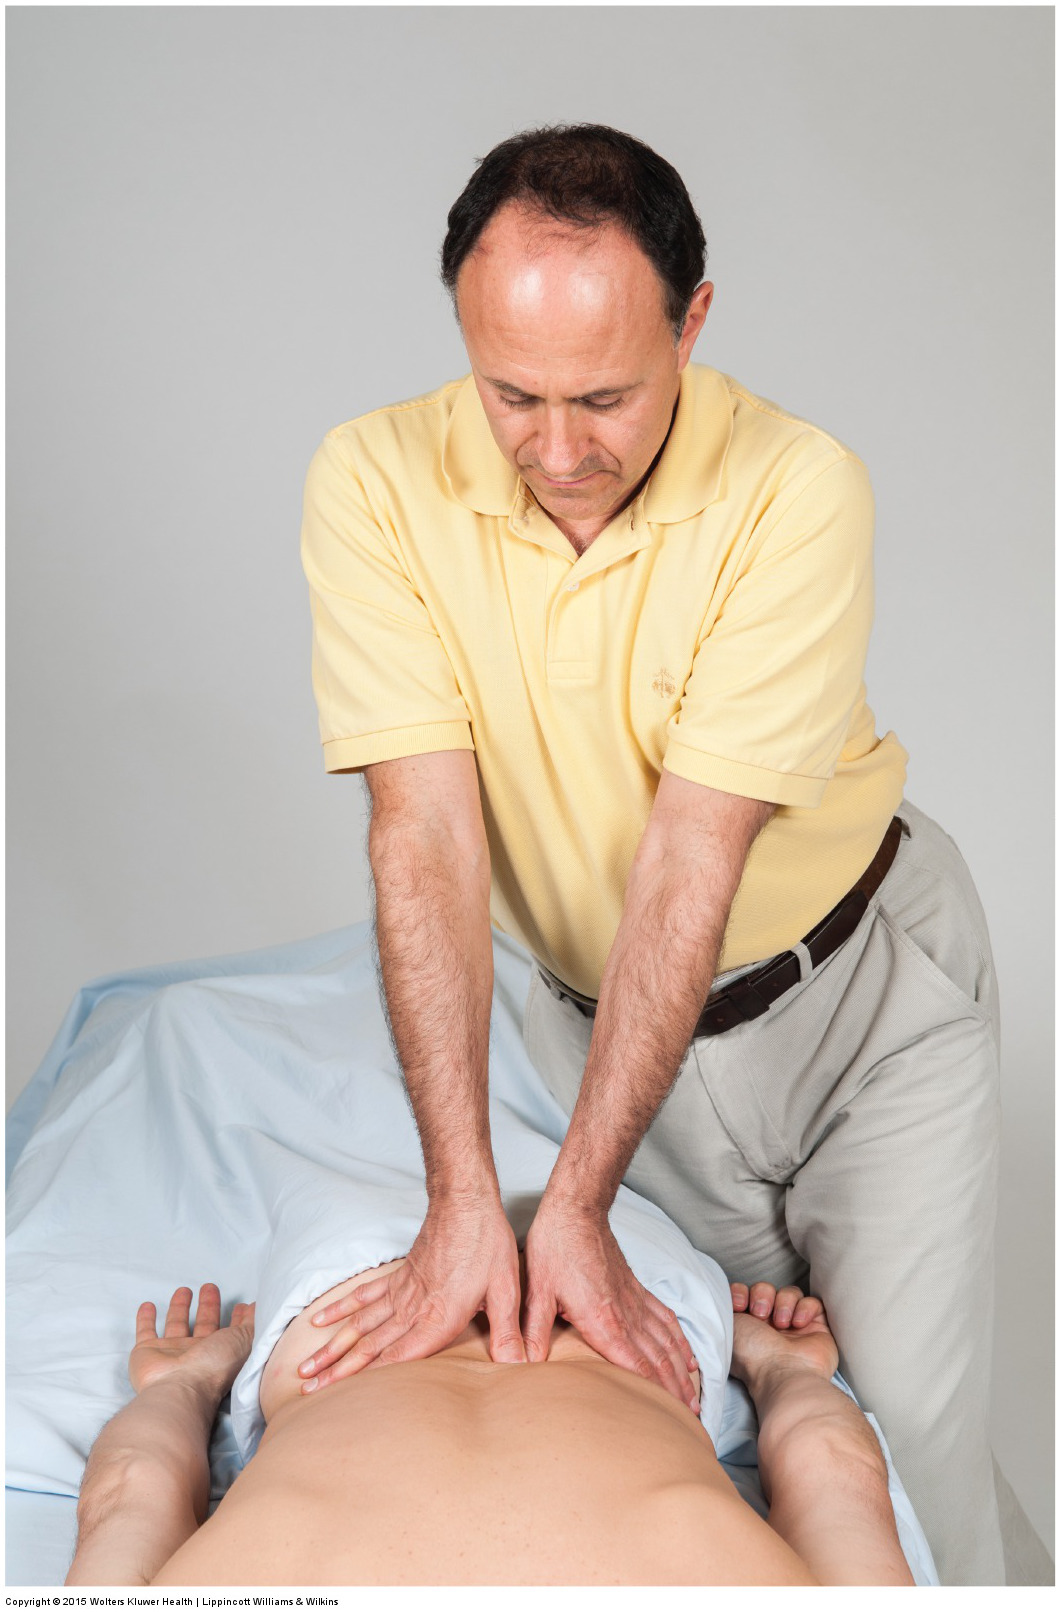 manual therapy soft tissue manipulation (massage) for low back muscle tightness